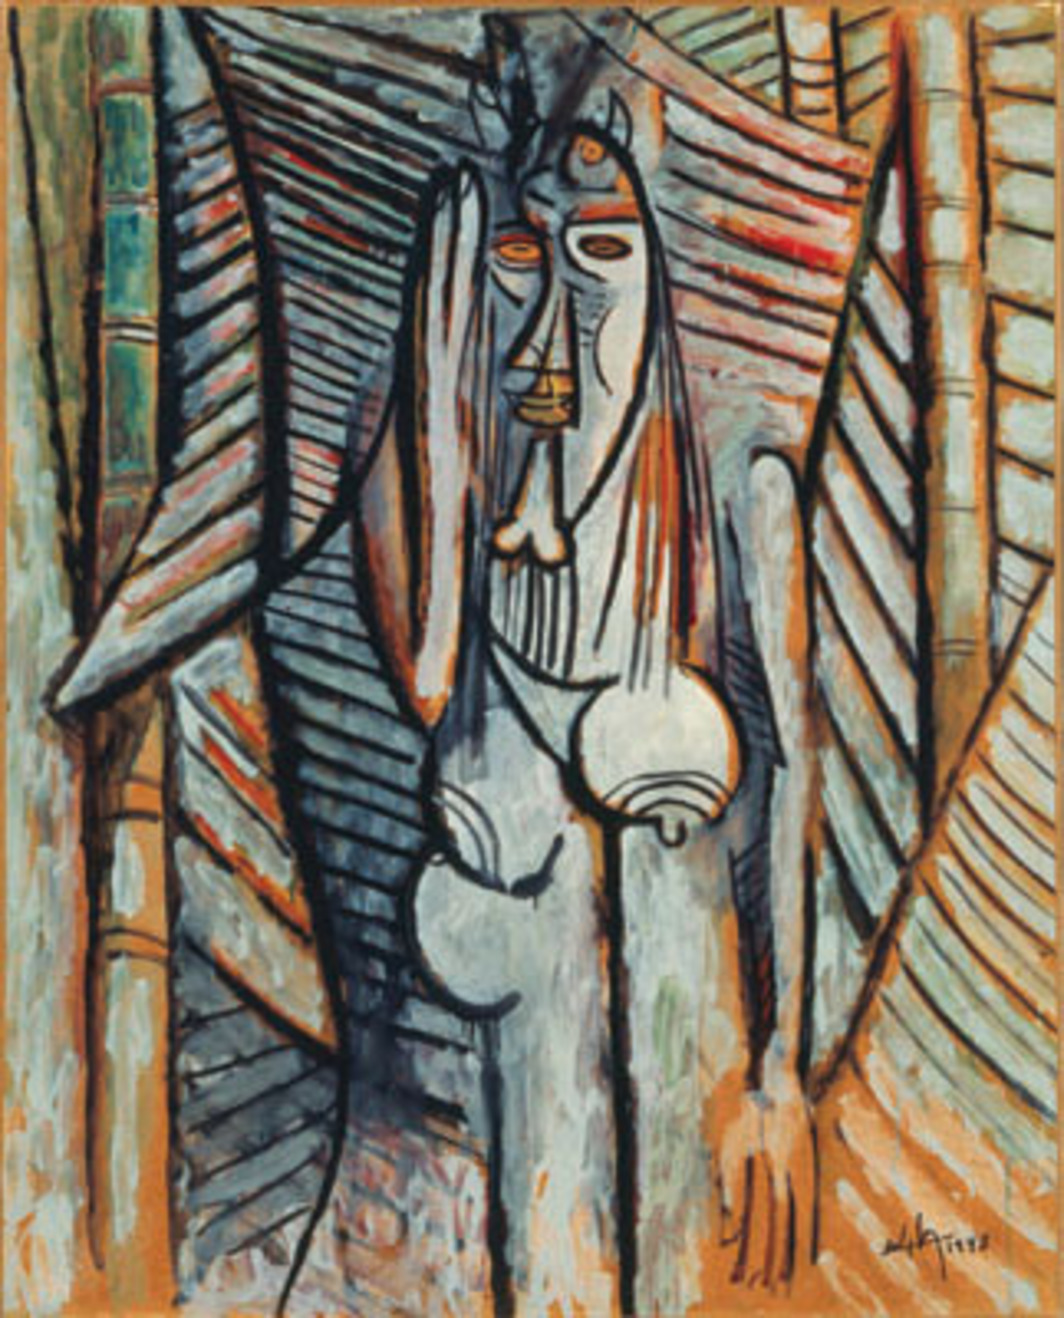 "Wifredo Lam, The Murmur, 1943, oil on paper mounted on canvas, 41 5/16 x 33 1/6"". © Estate of Wifredo Lam, 2007 / Artists Rights Society (ARS), New York / ADGAP, Paris."